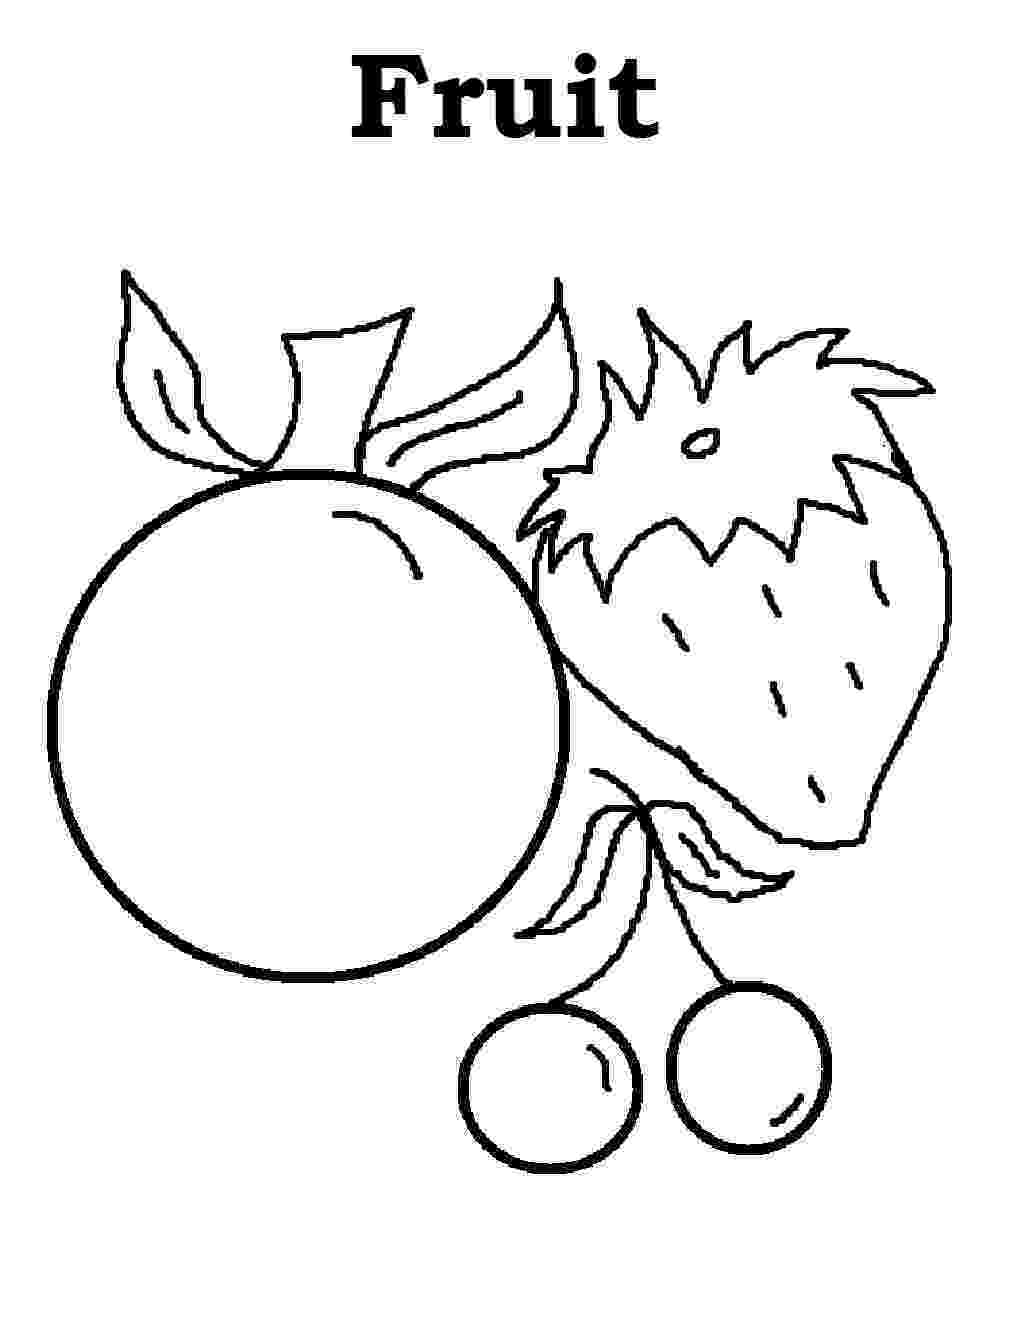 fruit images to color free printable fruit coloring pages for kids to fruit color images